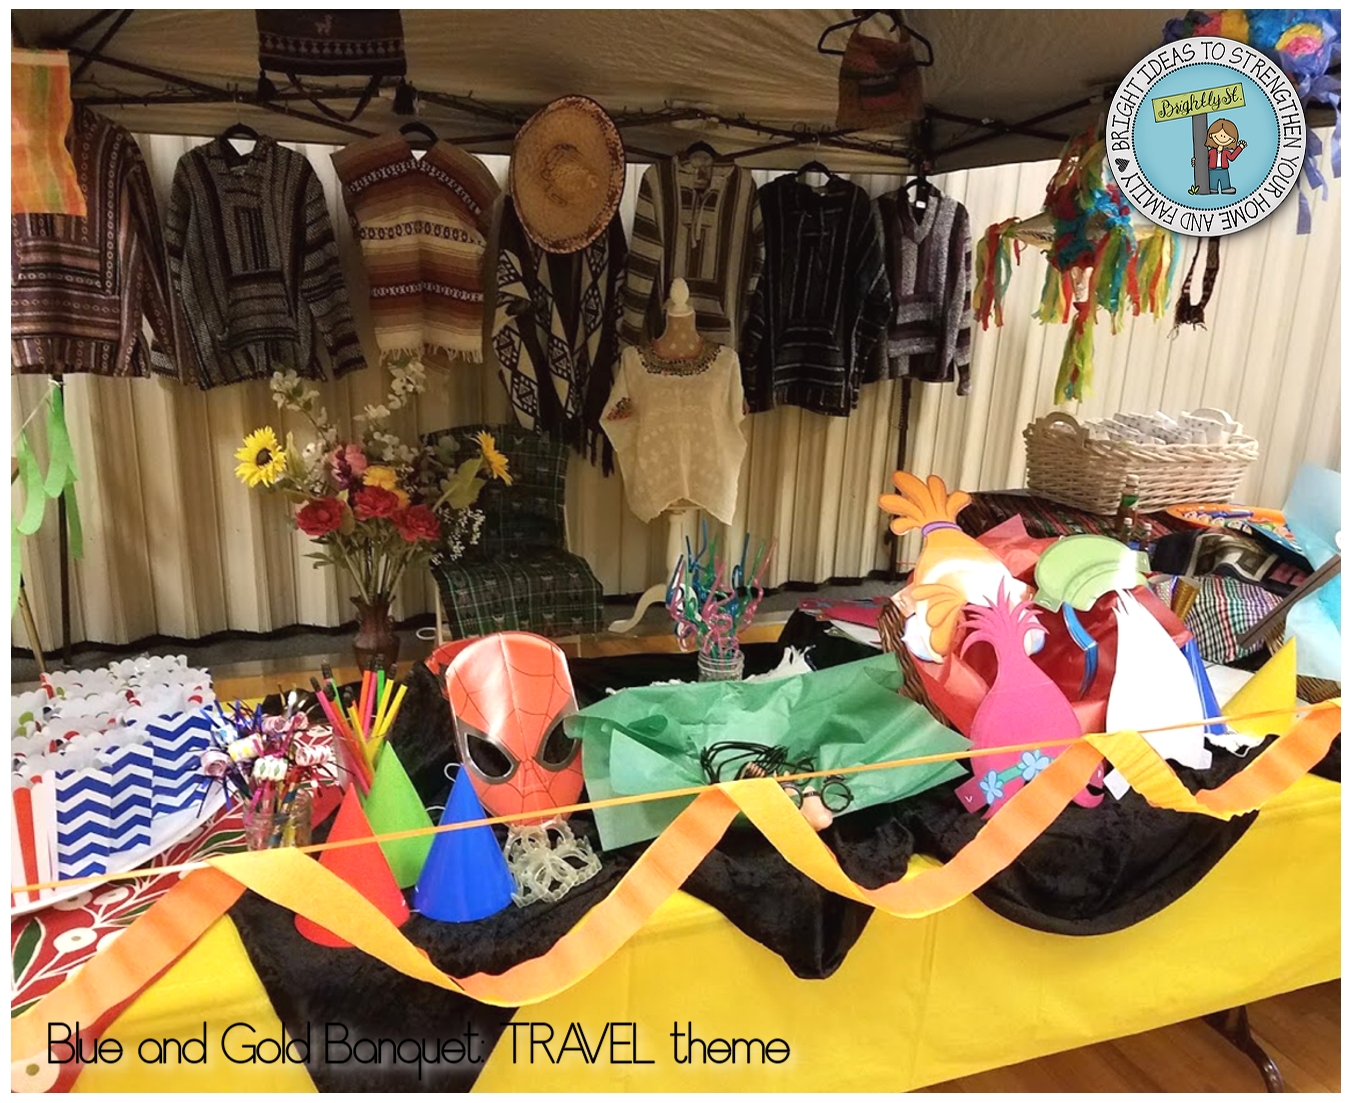 cub scouts blue and gold banquet travel theme - brightly street